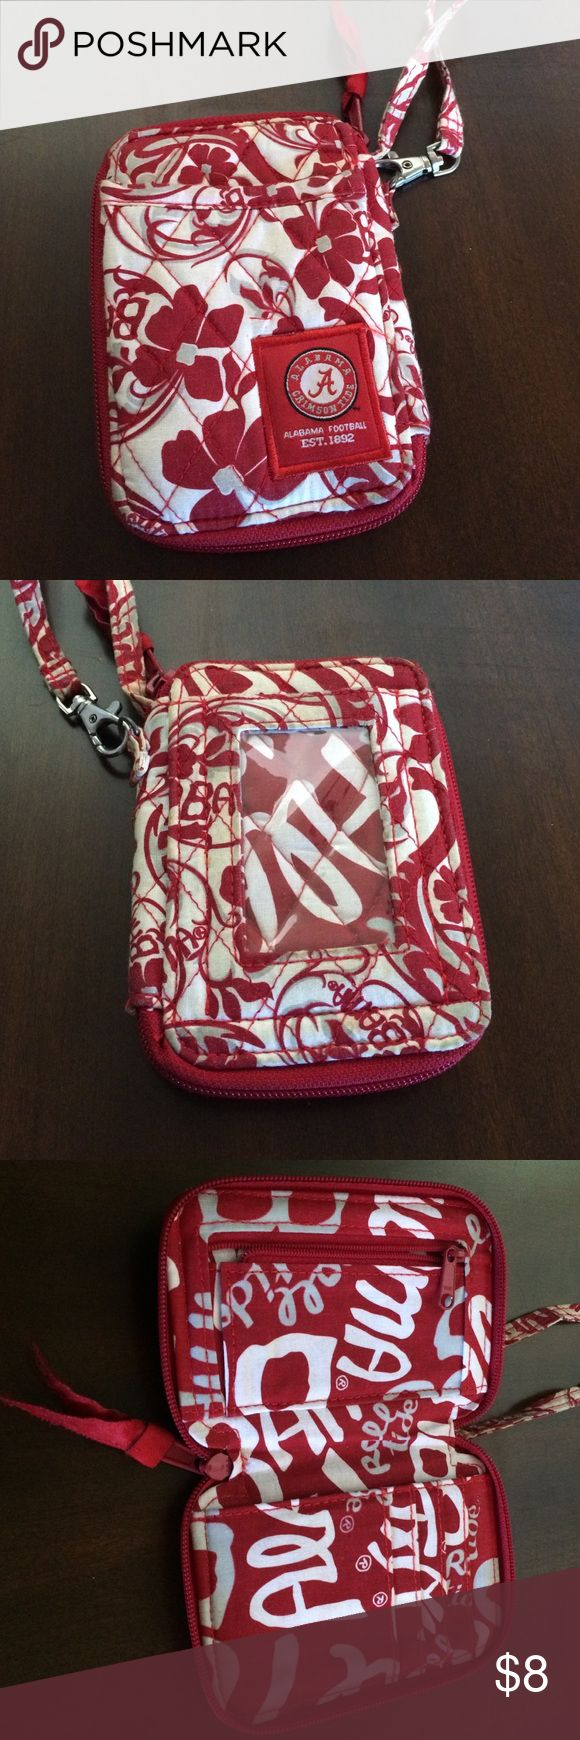 Alabama quilted wrist wallet clutch Crimson and white floral quilted wallet with wrist strap. Outside pocket could hold cell phone. Inside is in perfect condition, outside is a little dirty. No stains so it could probably be washed. Bags Clutches & Wristlets